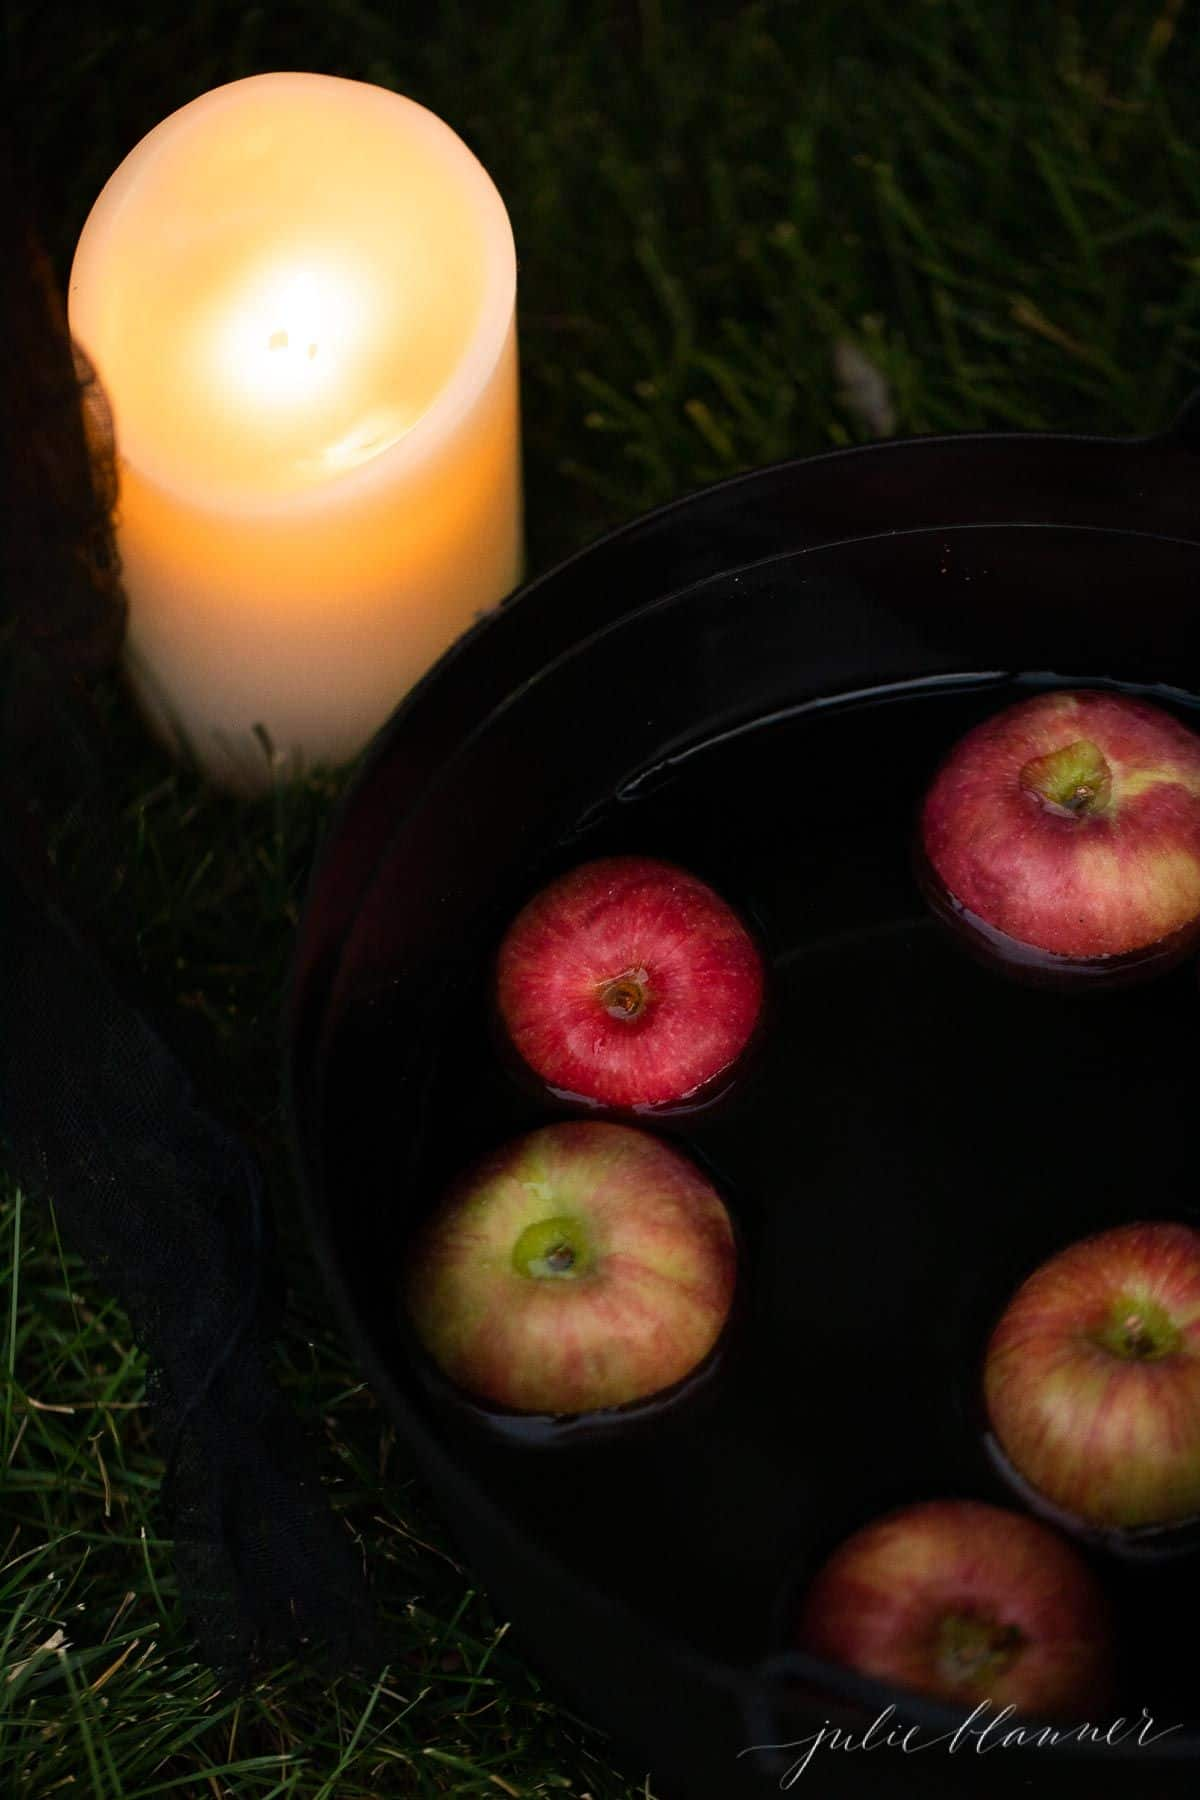 A cauldron full of fresh apples and a battery powered pillar candle sitting in grass.